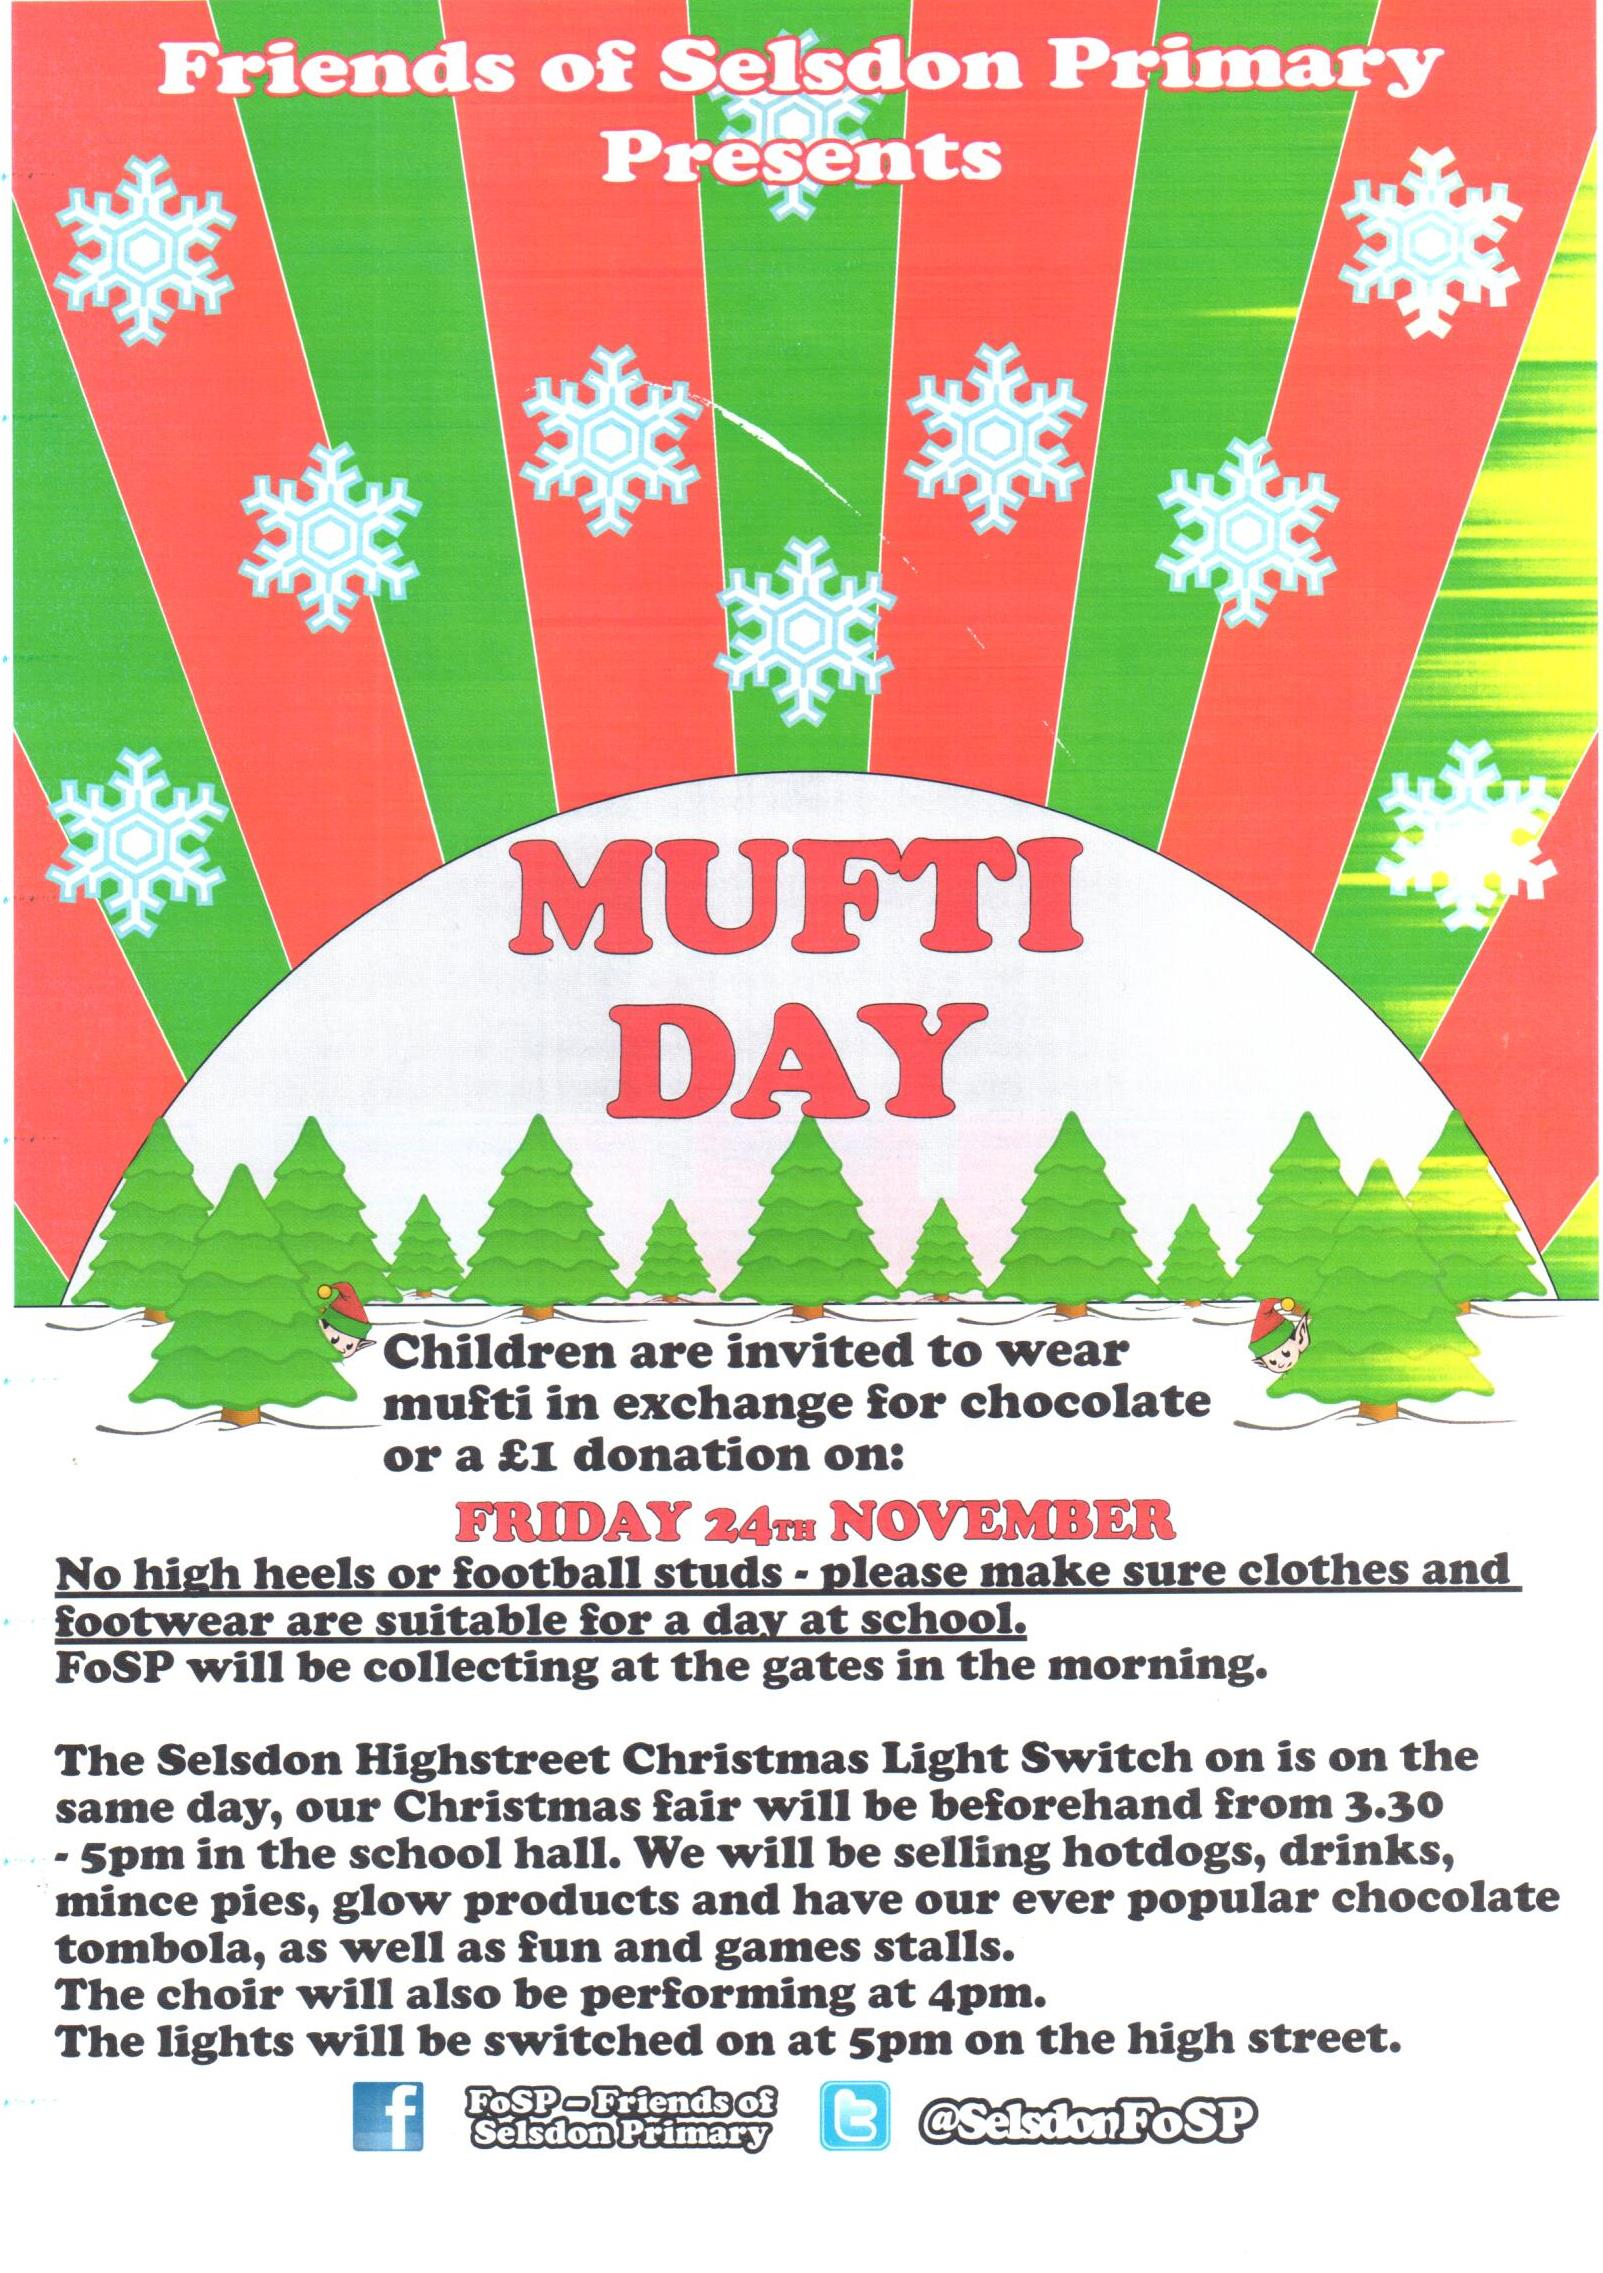 Fosp Mufti Day Friday 24 November In Exchange For